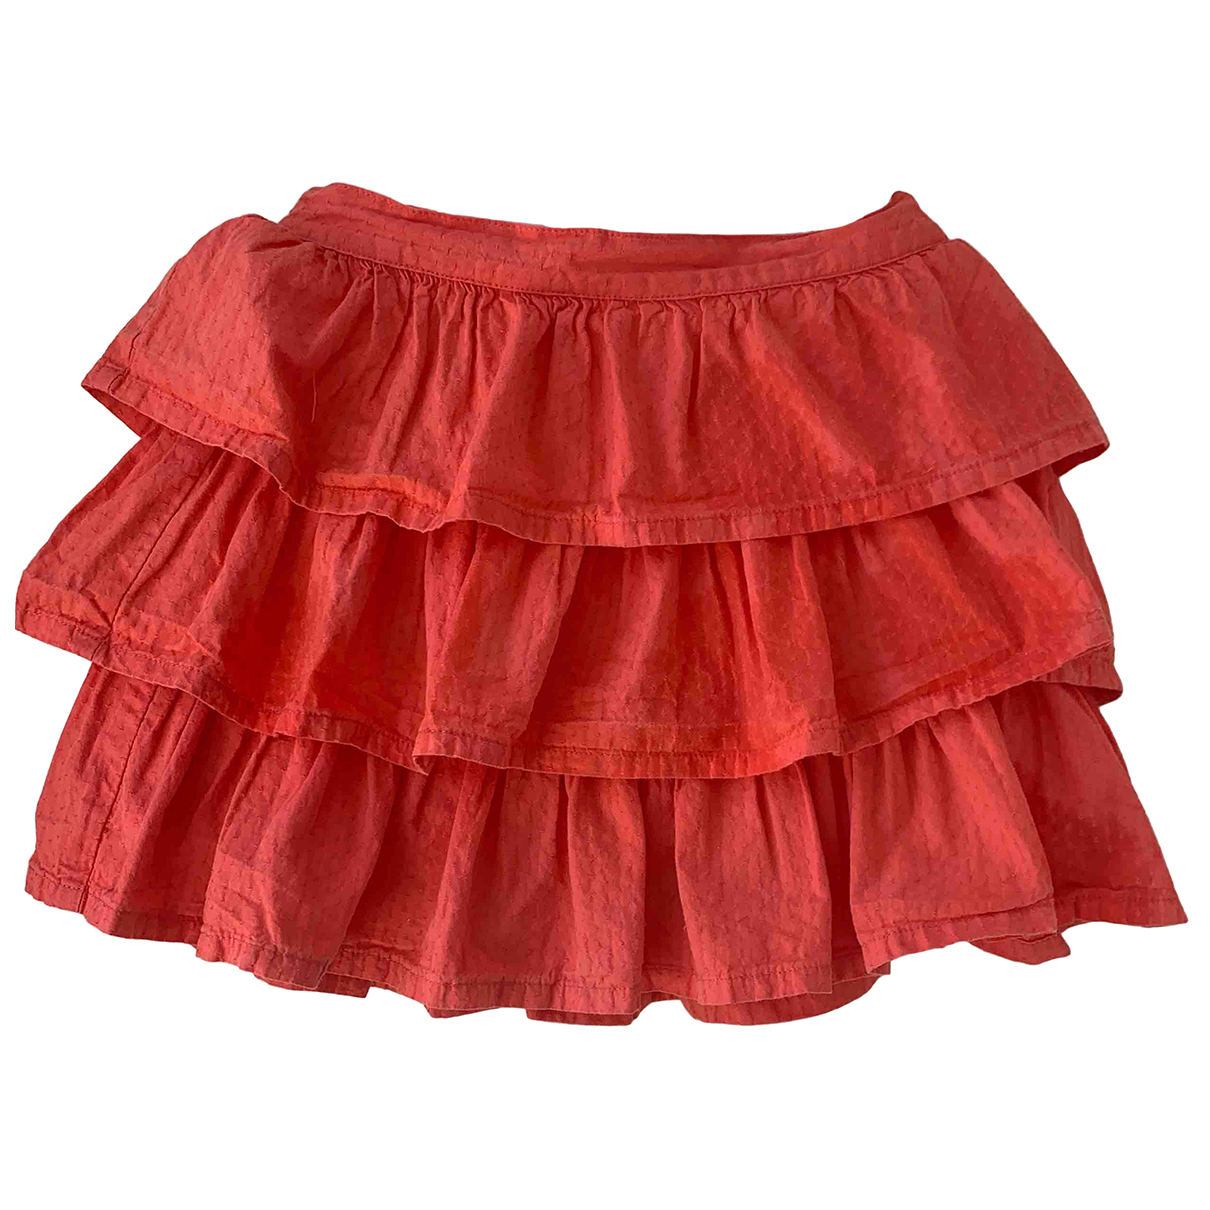 Petit Bateau N Orange Cotton skirt for Kids 3 years - up to 98cm FR